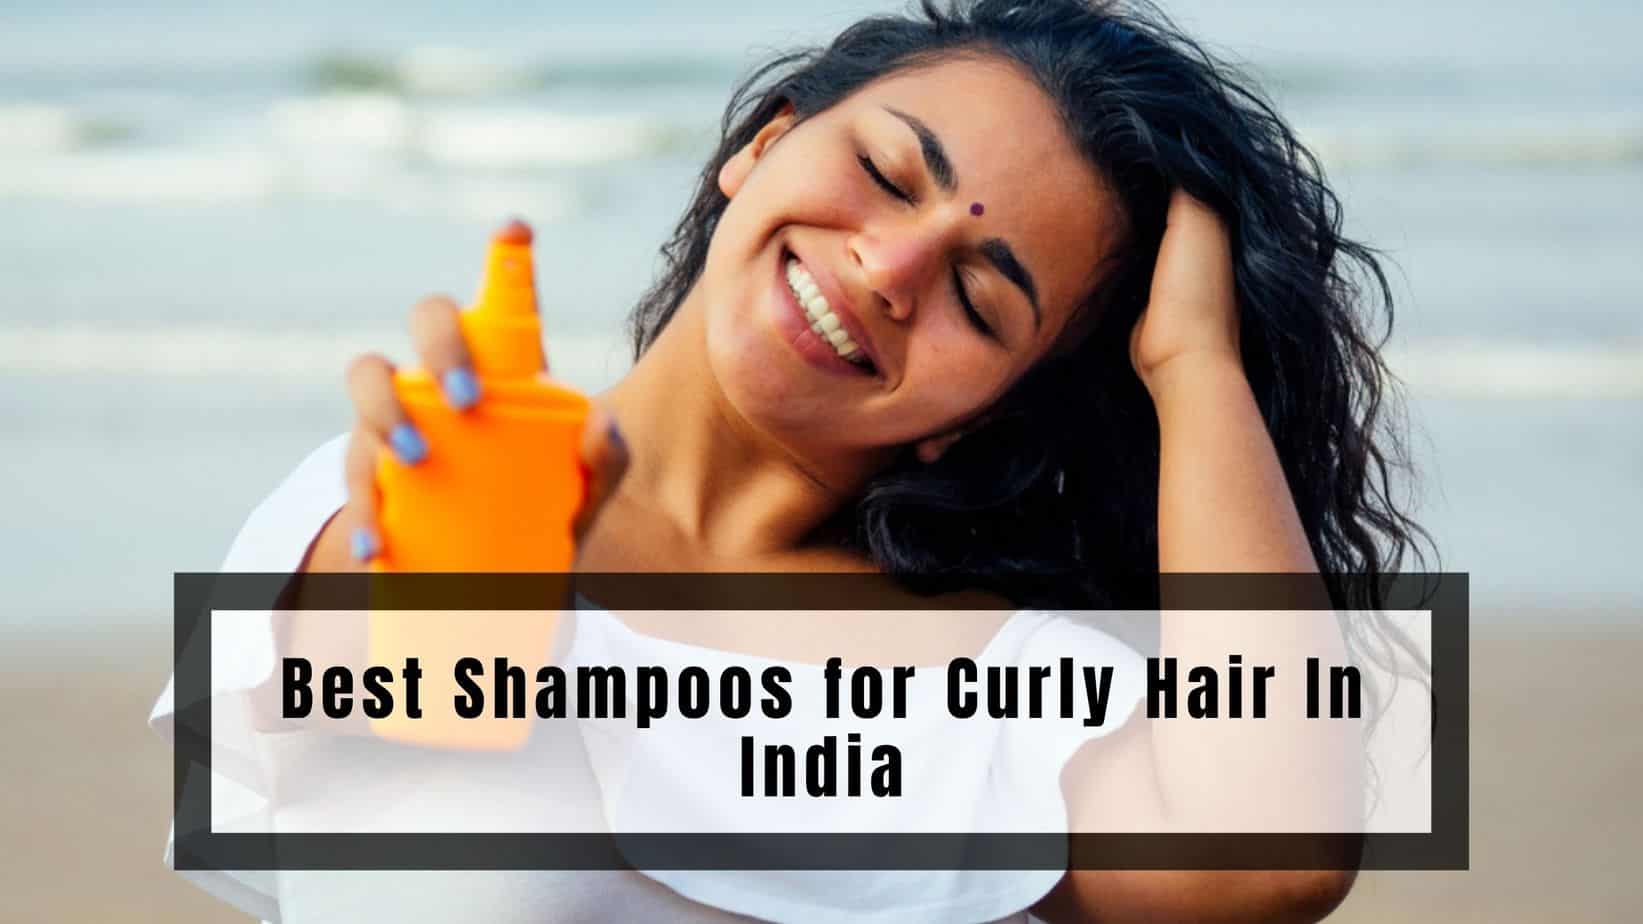 Best Shampoos for Curly Hair In India